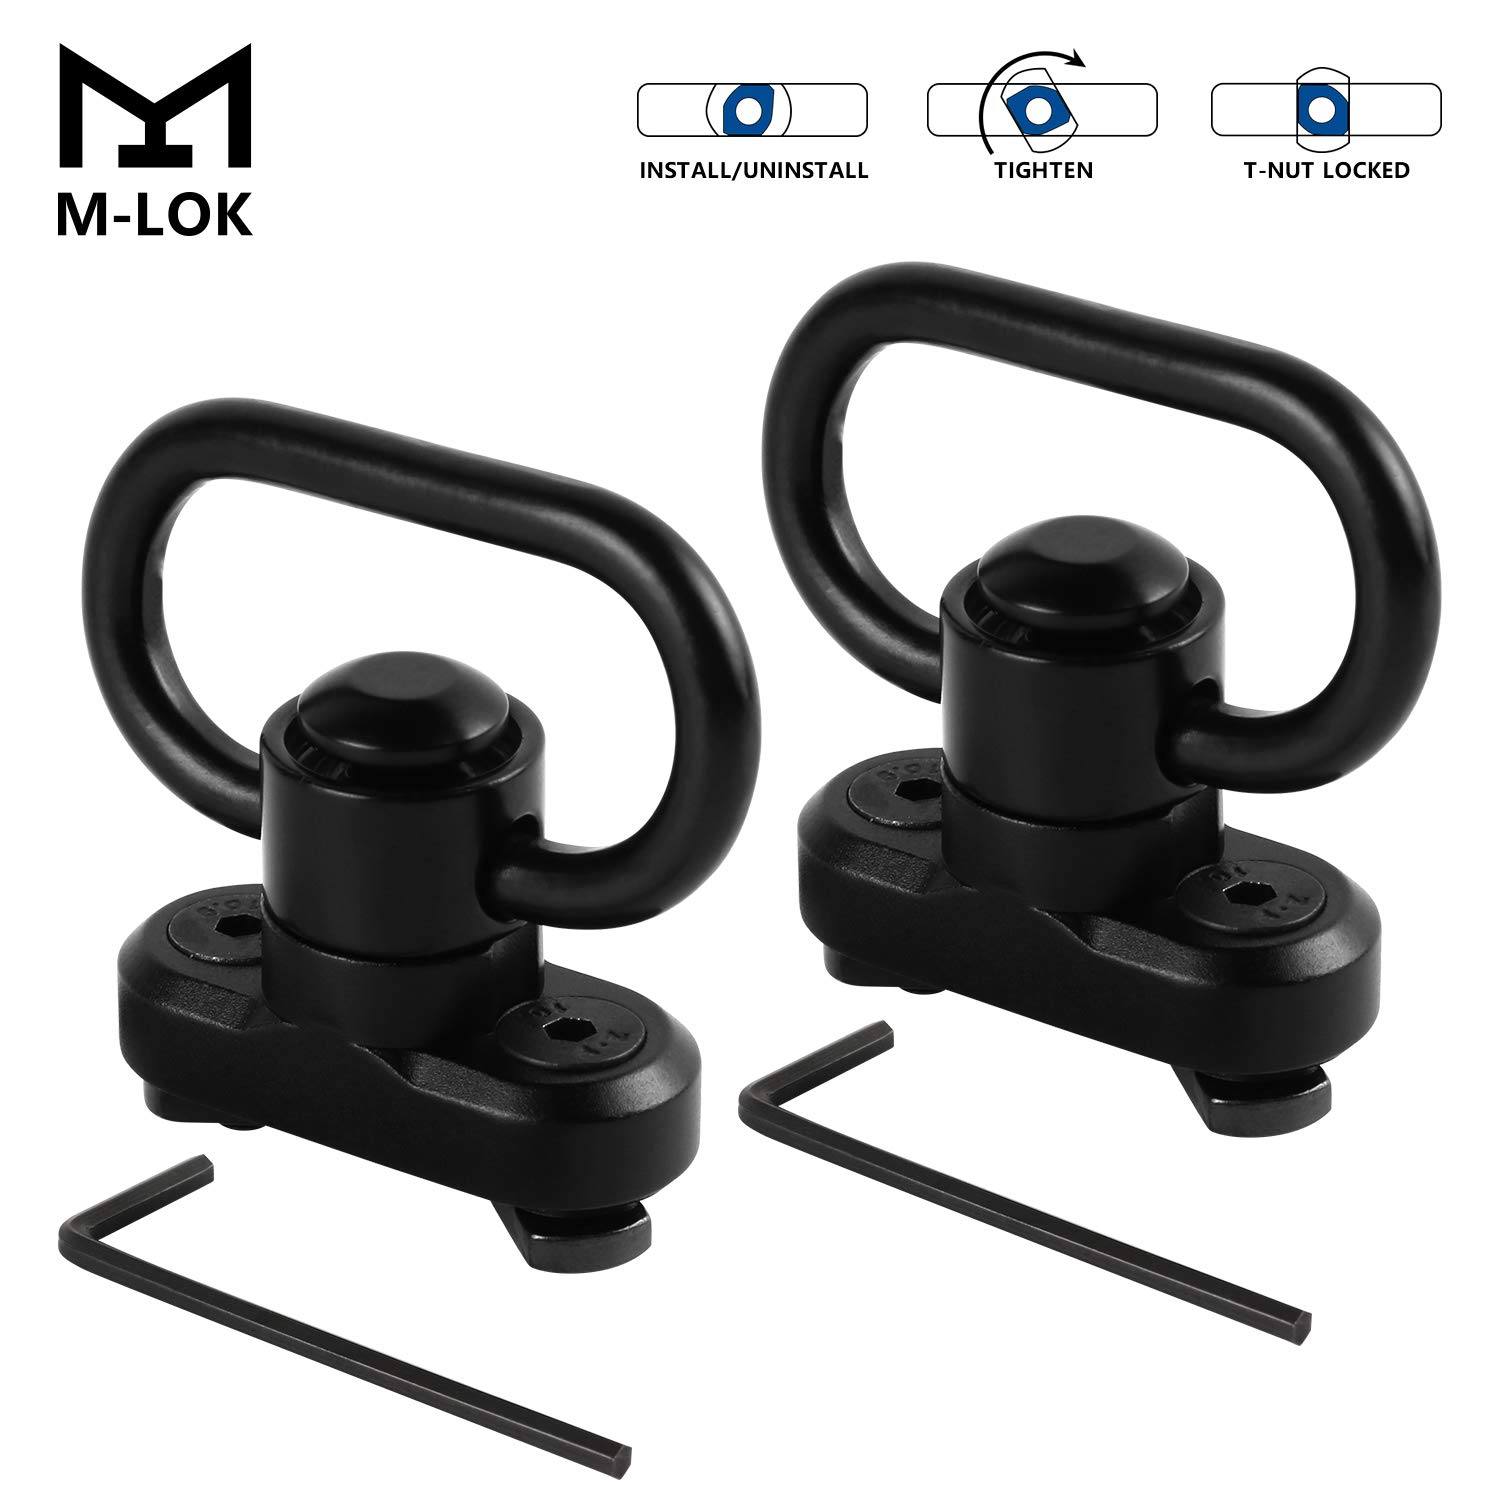 LaneTop 2 Pack M-lok Sling Mount with QD Swivel,1.25 Inch Quick Detach Sling Swivel Adapter for MLOK Rail System by LaneTop